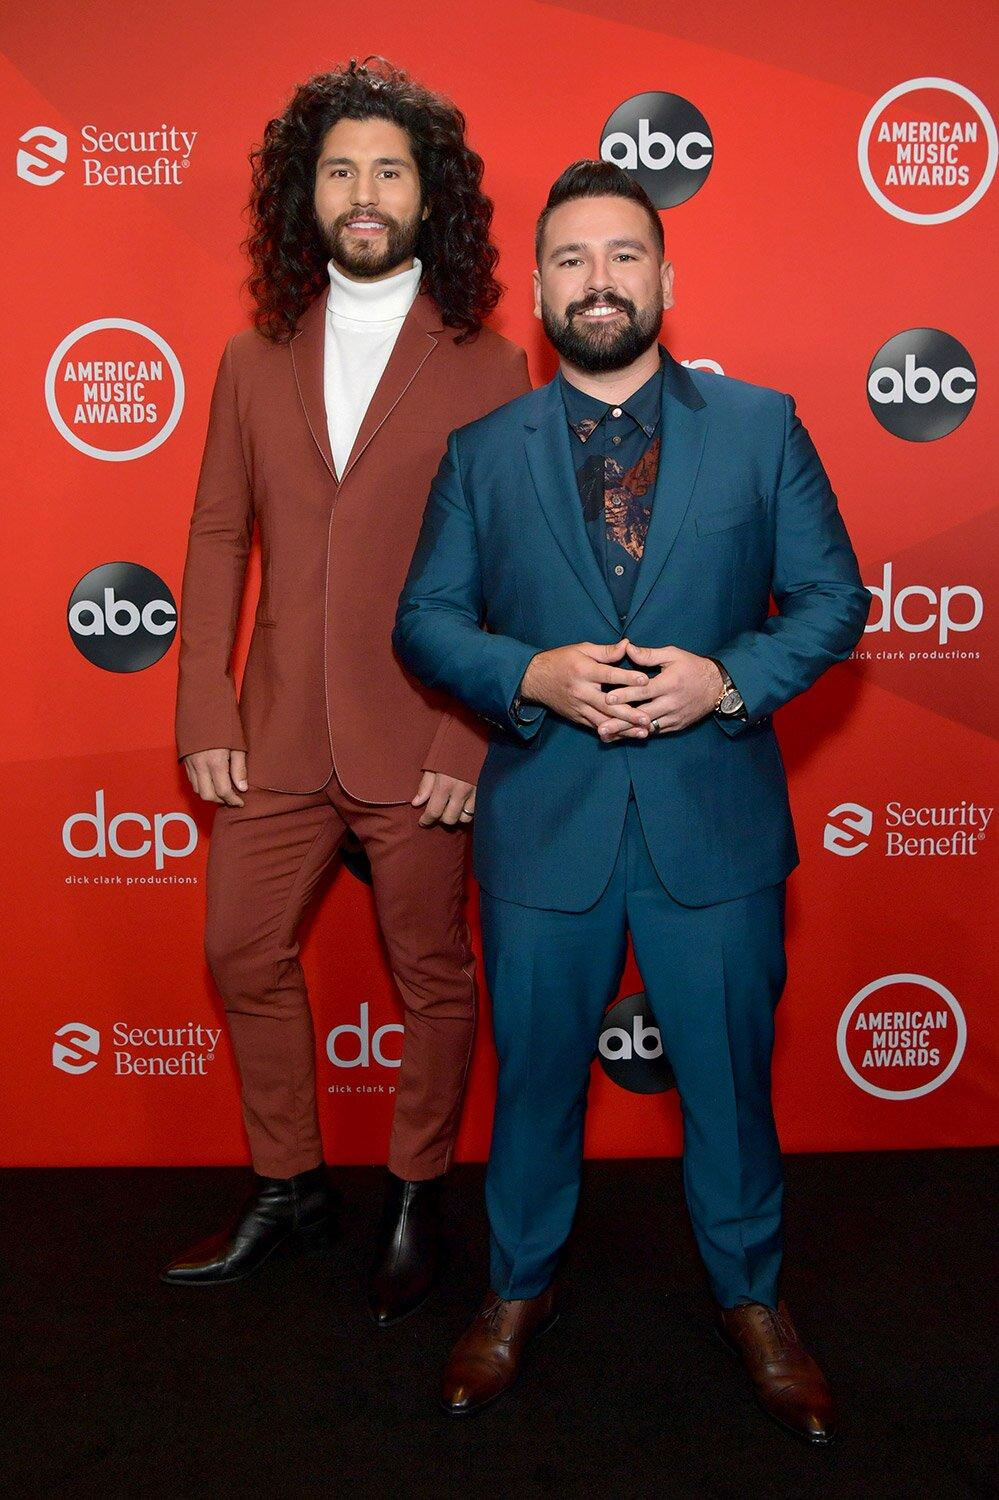 Dan + Shay Perform New Christmas Song for First Time on CMA Country Christmas